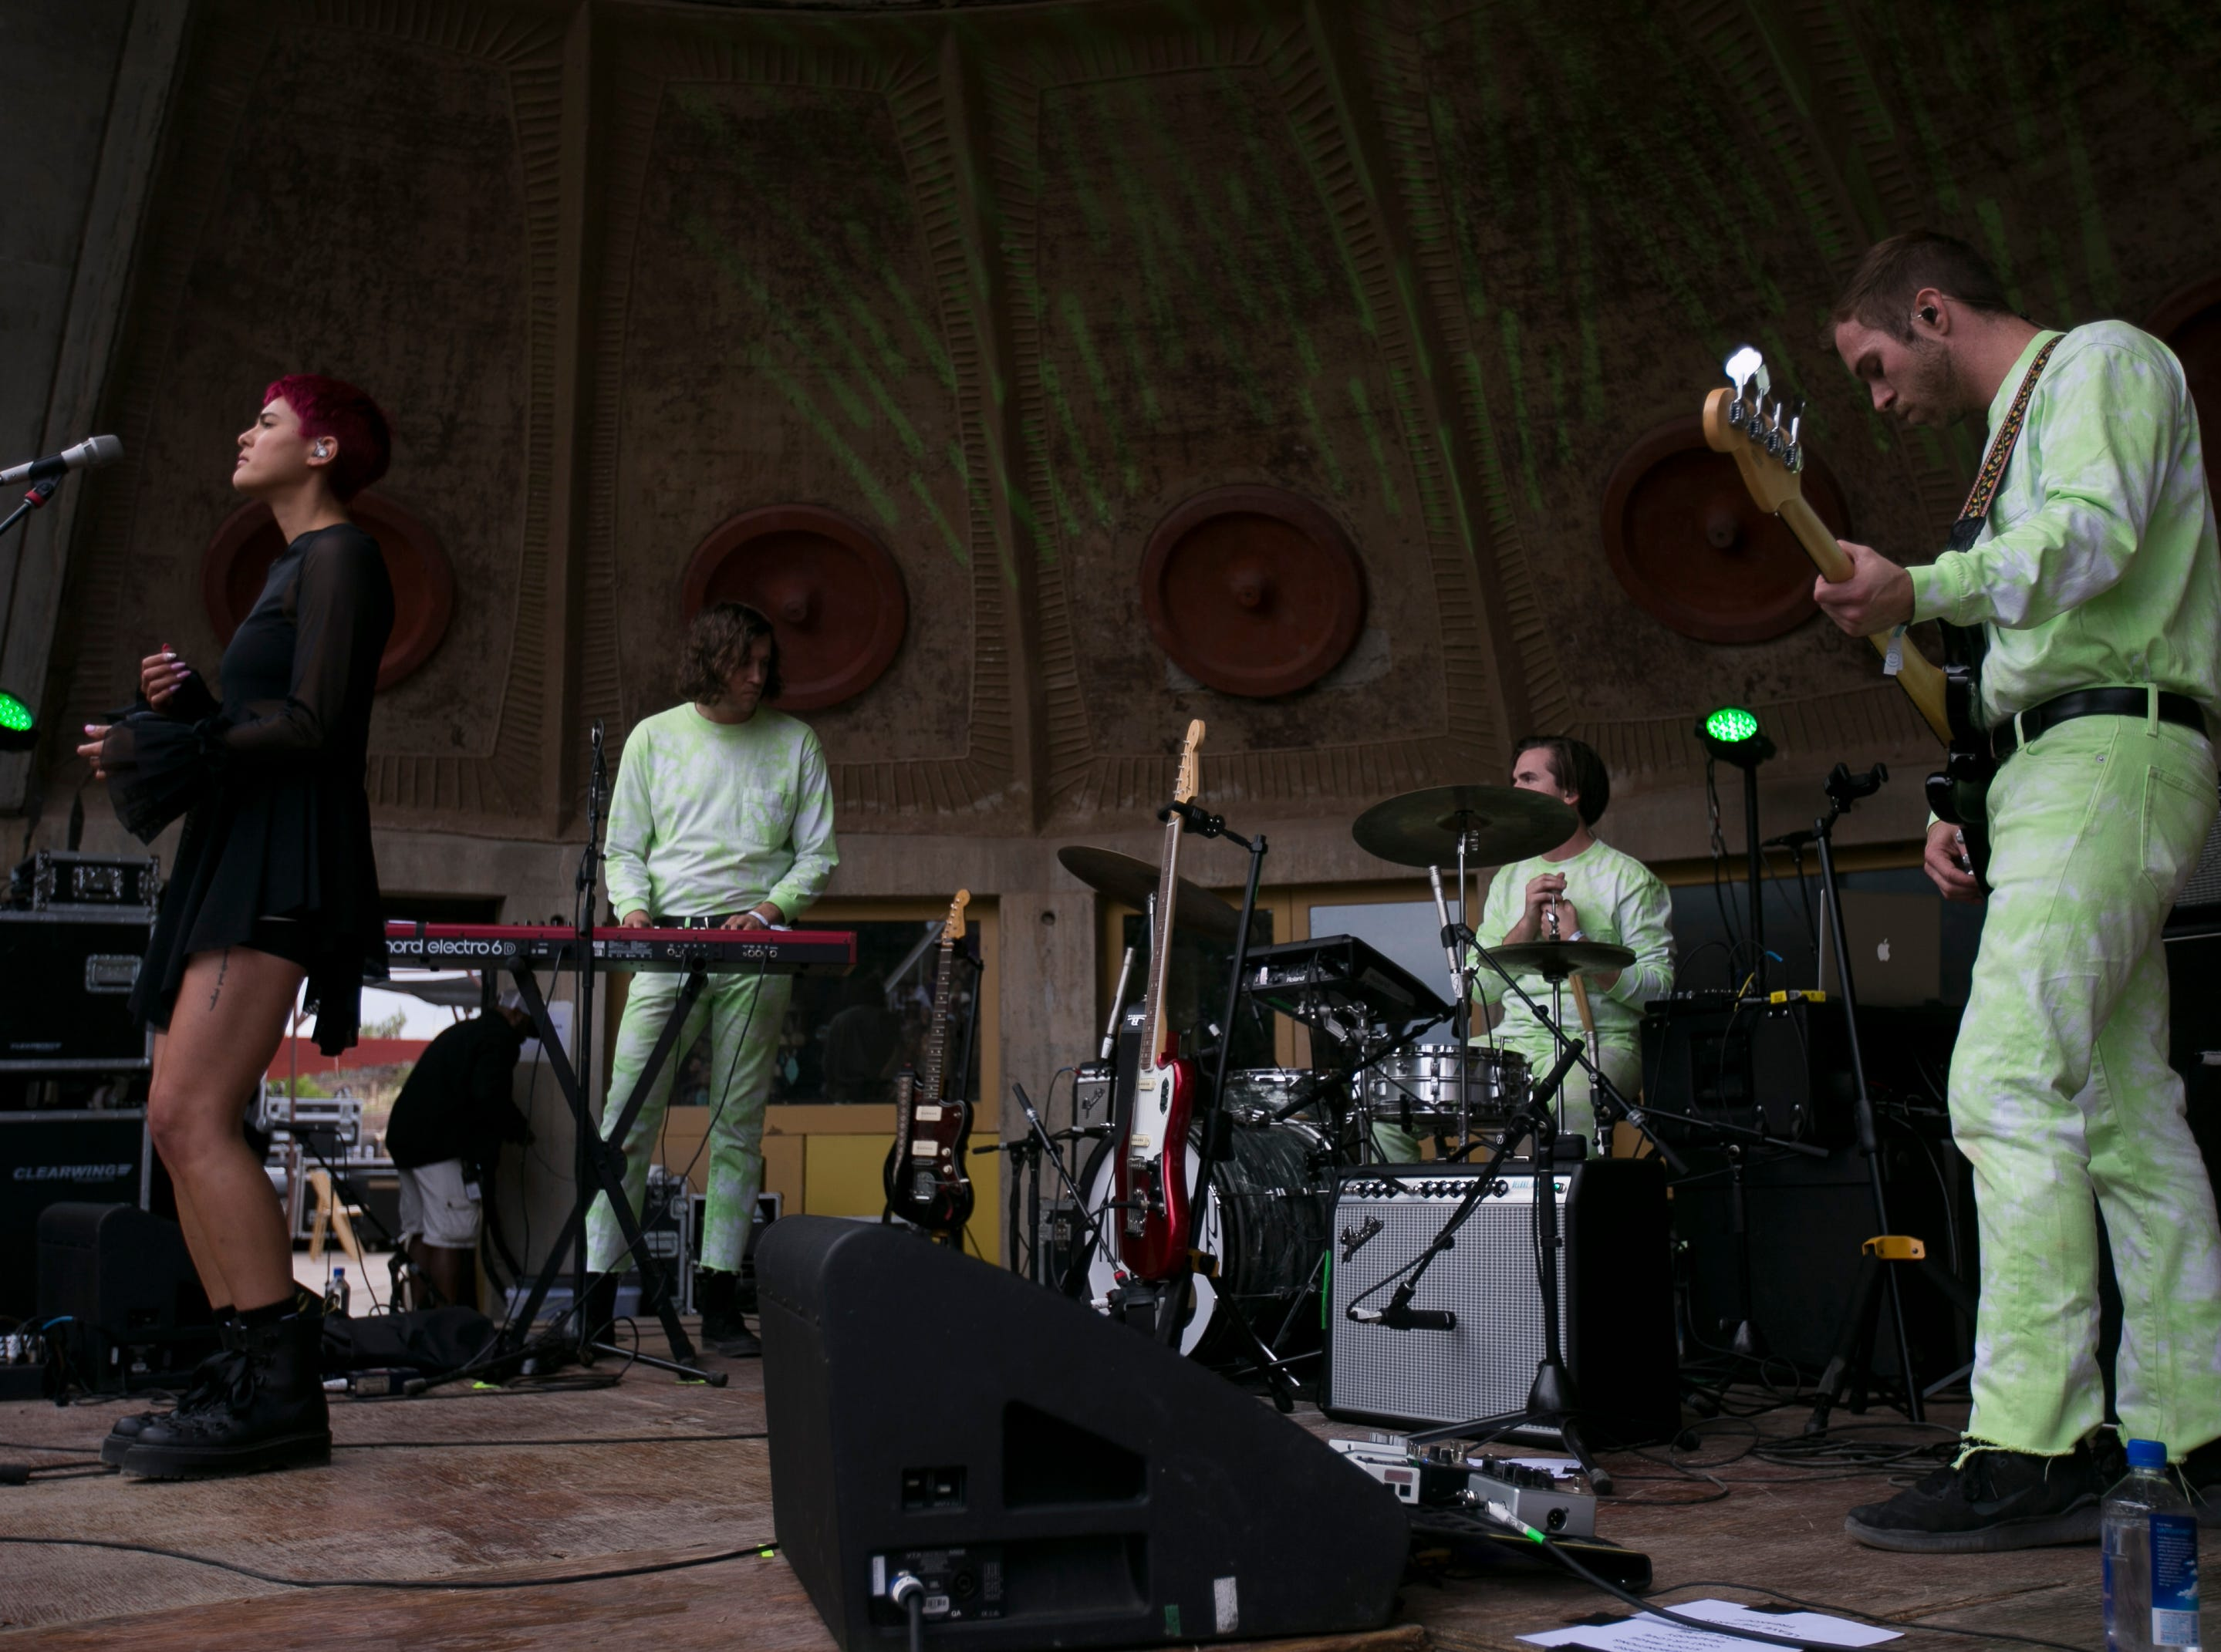 Miya Folick performs at the 2019 FORM Arcosanti music festival near Camp Verde, Arizona, on May 11, 2019.